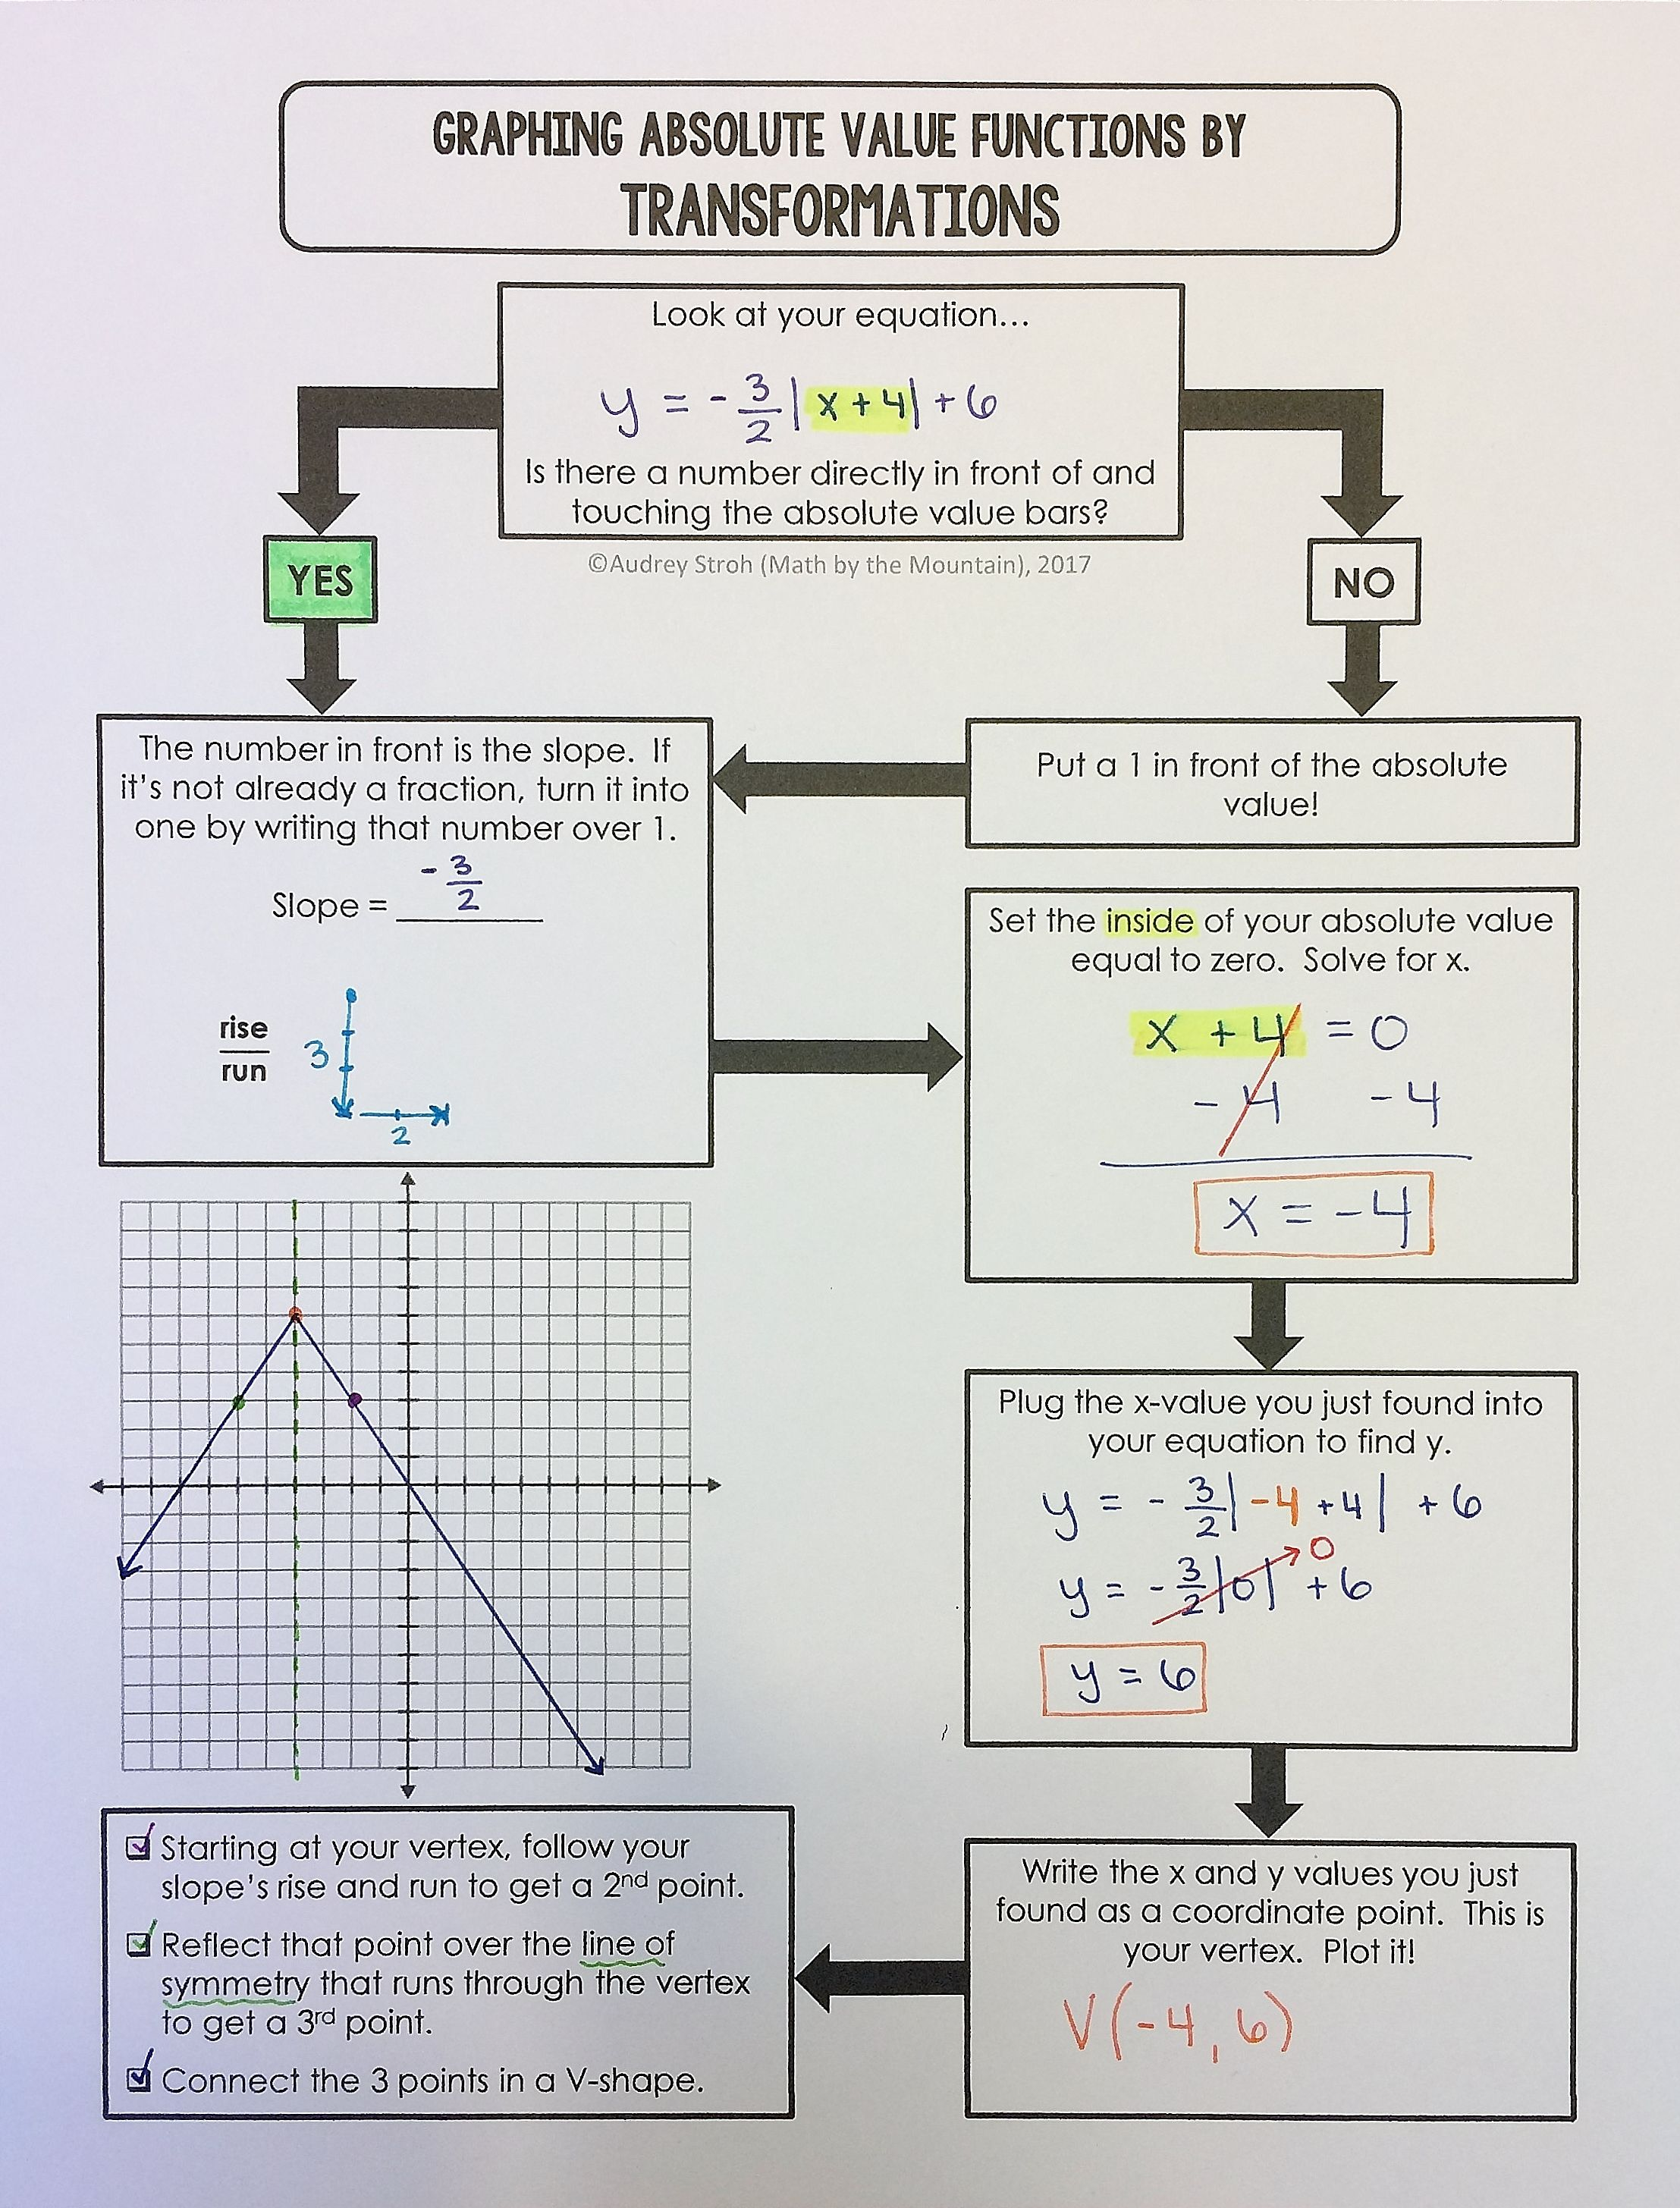 graphing absolute value functions *flowchart* graphic organizer